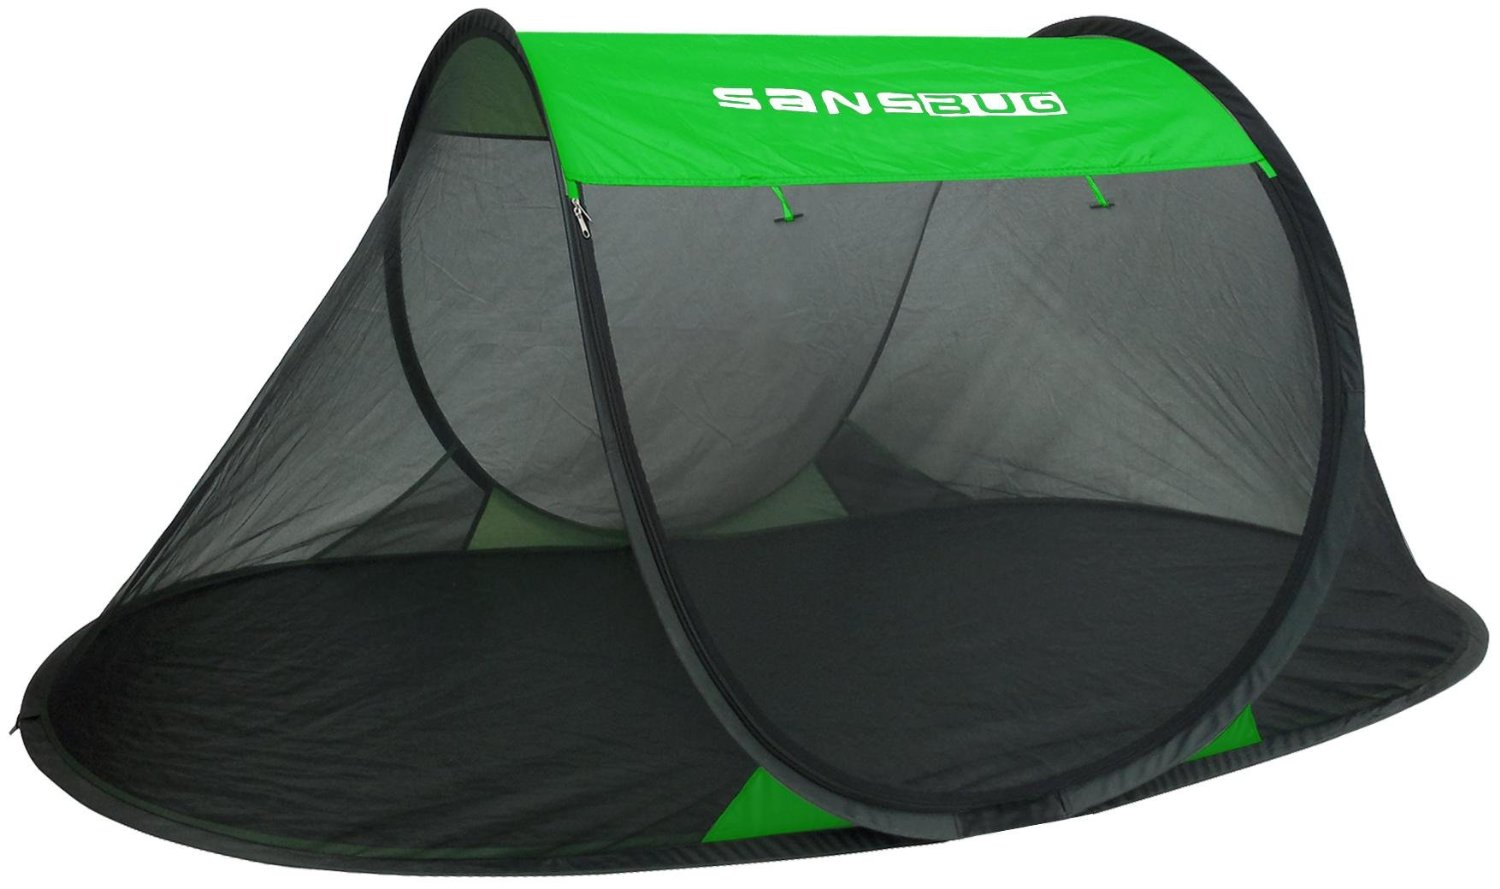 For bug protection  sc 1 st  The C&ing Family & Self Erecting Tents: Ideal For Specific Situations